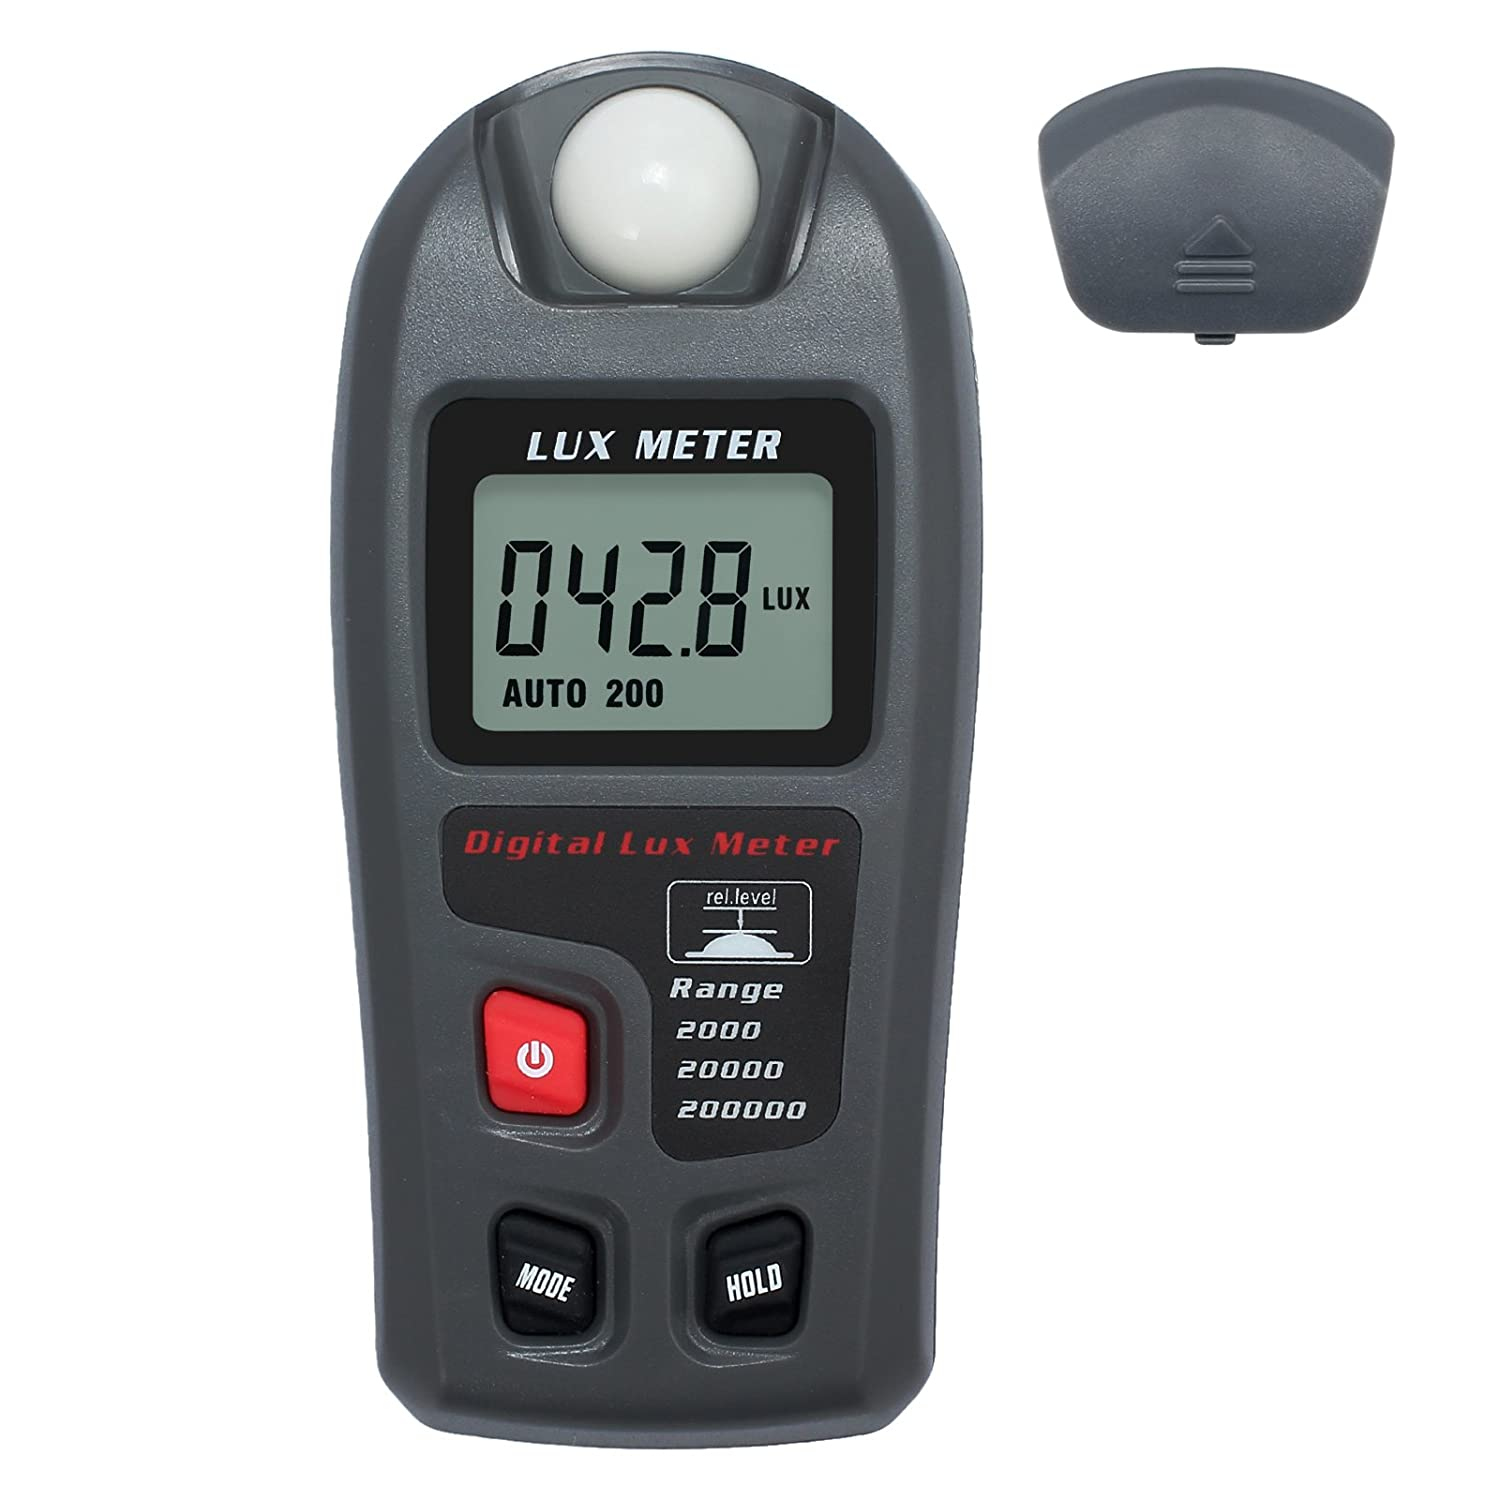 Kamtop Digital Light Meter High Accuracy Handheld Lux Meter with Battery Range at 200, 000LUX/ 20, 000FC Portable Luminometer Photometer with LCD Display Light Measurement for Photography Factory Warehouse Laboratory School Office TL240-KPT-UK